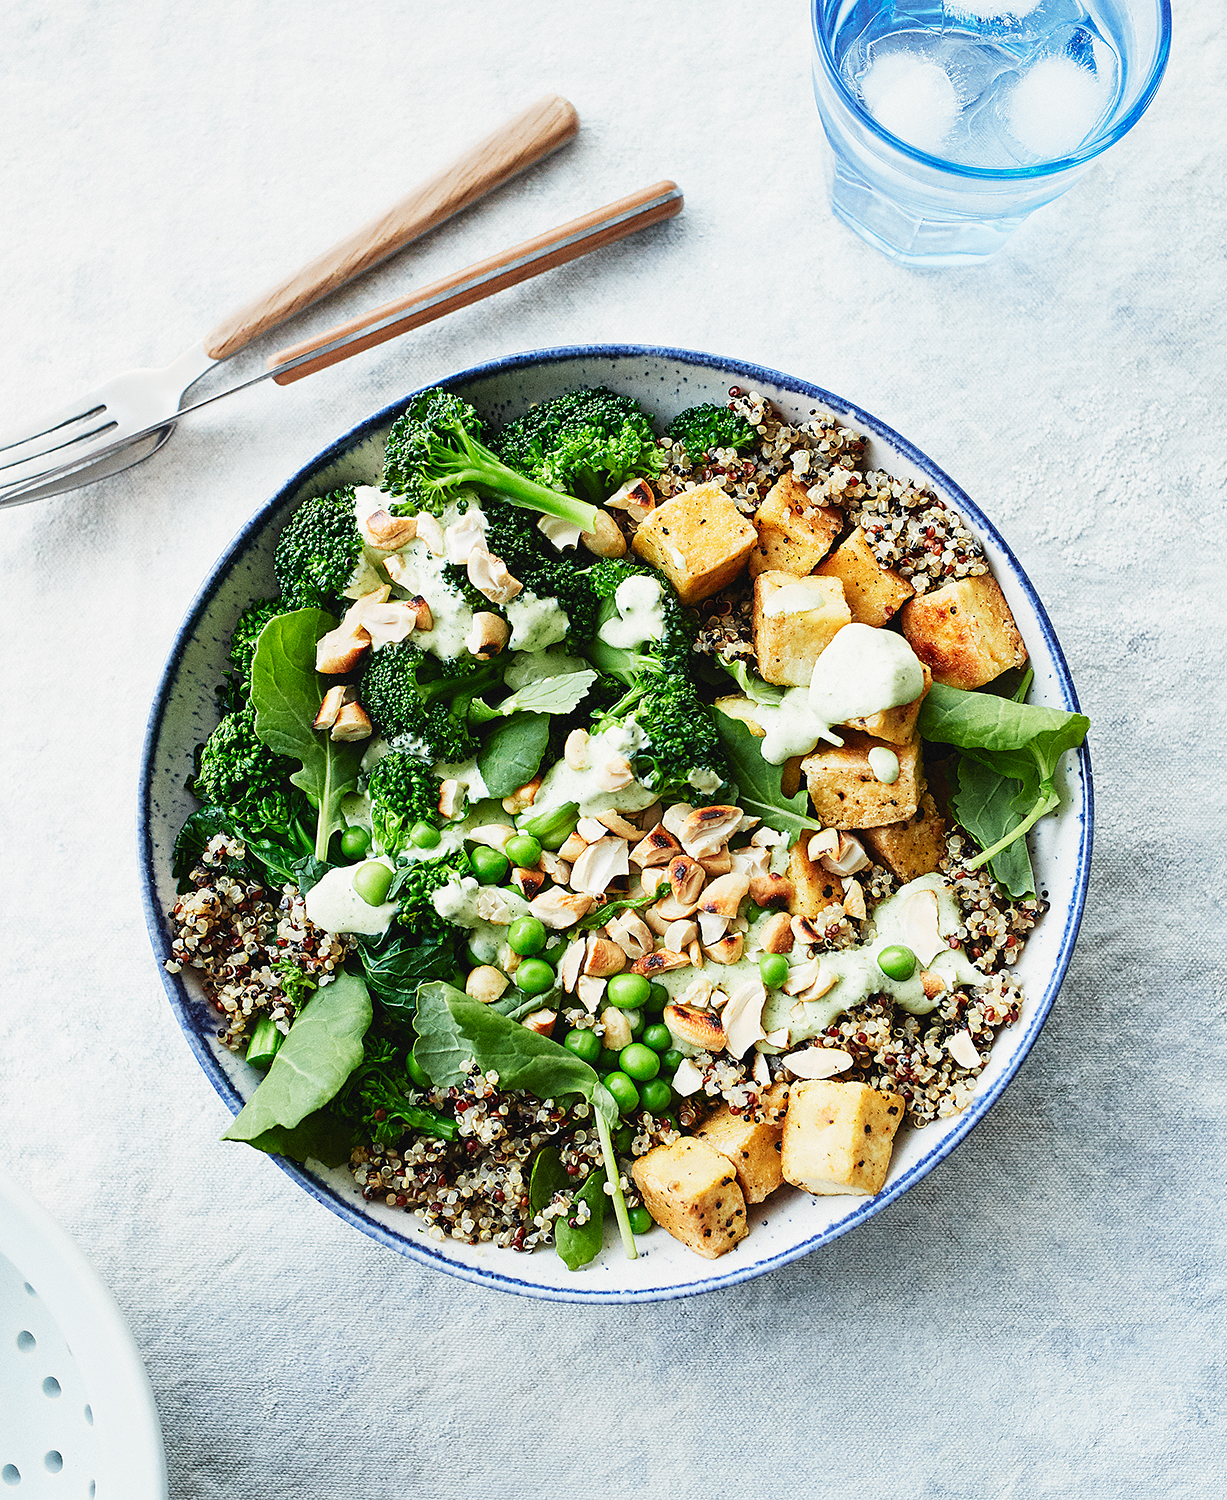 16_Quinoa_Bowl_RecipeShot_RS_6456.jpg